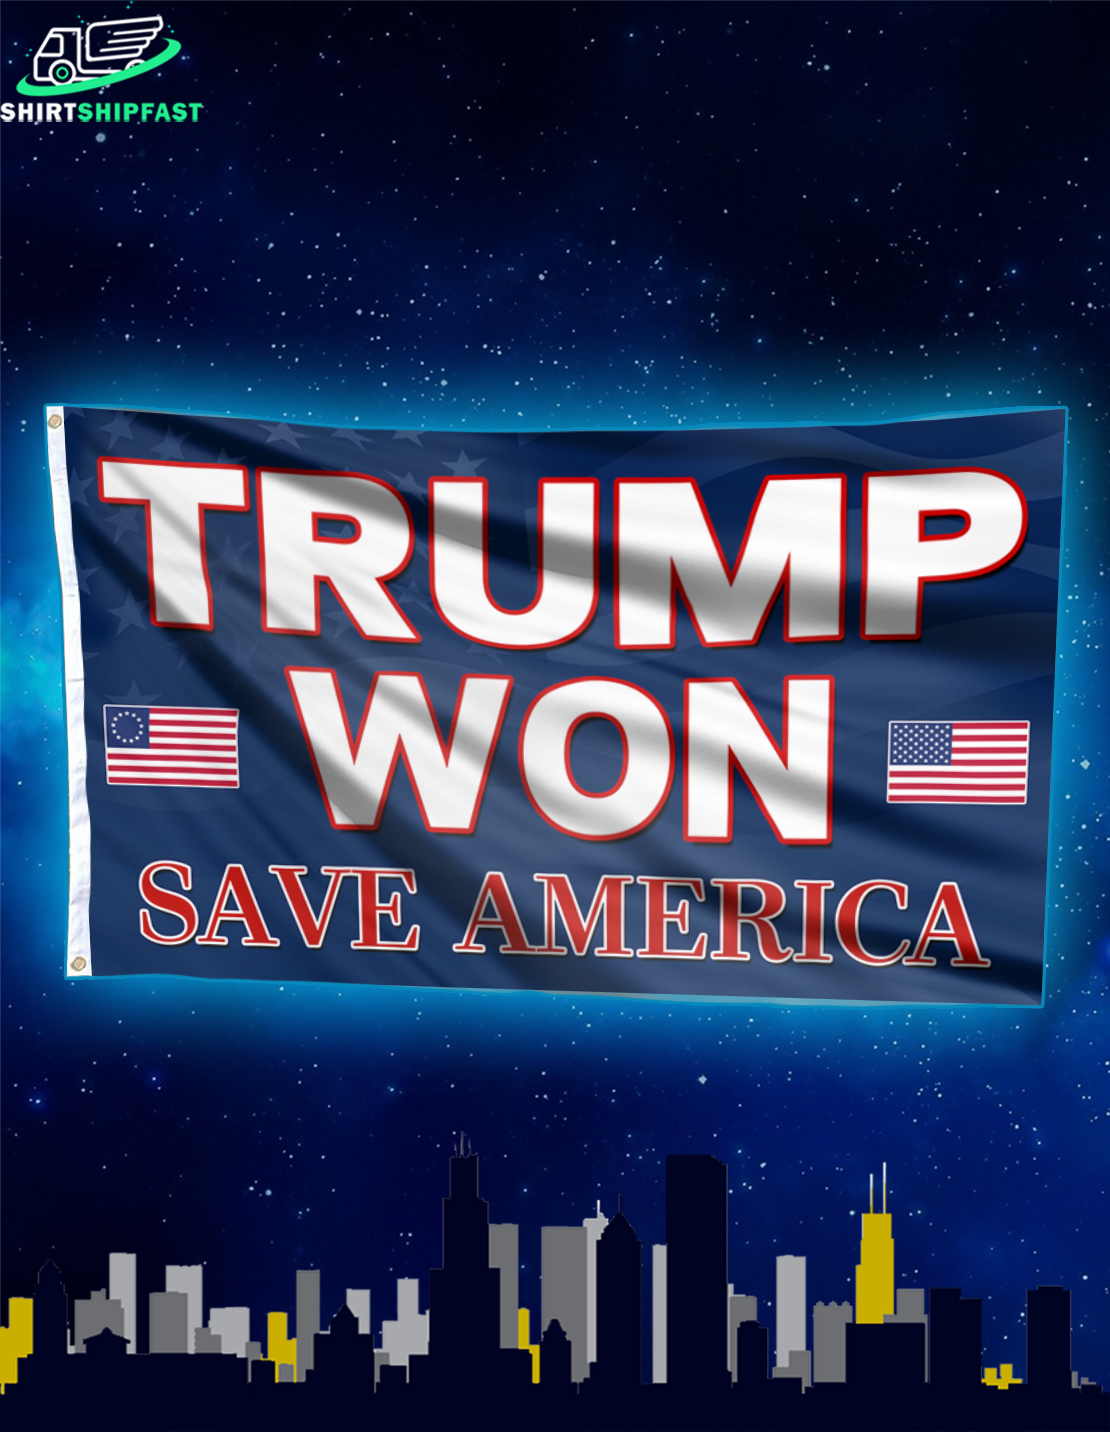 Trump won save America house and garden flag - Picture 2